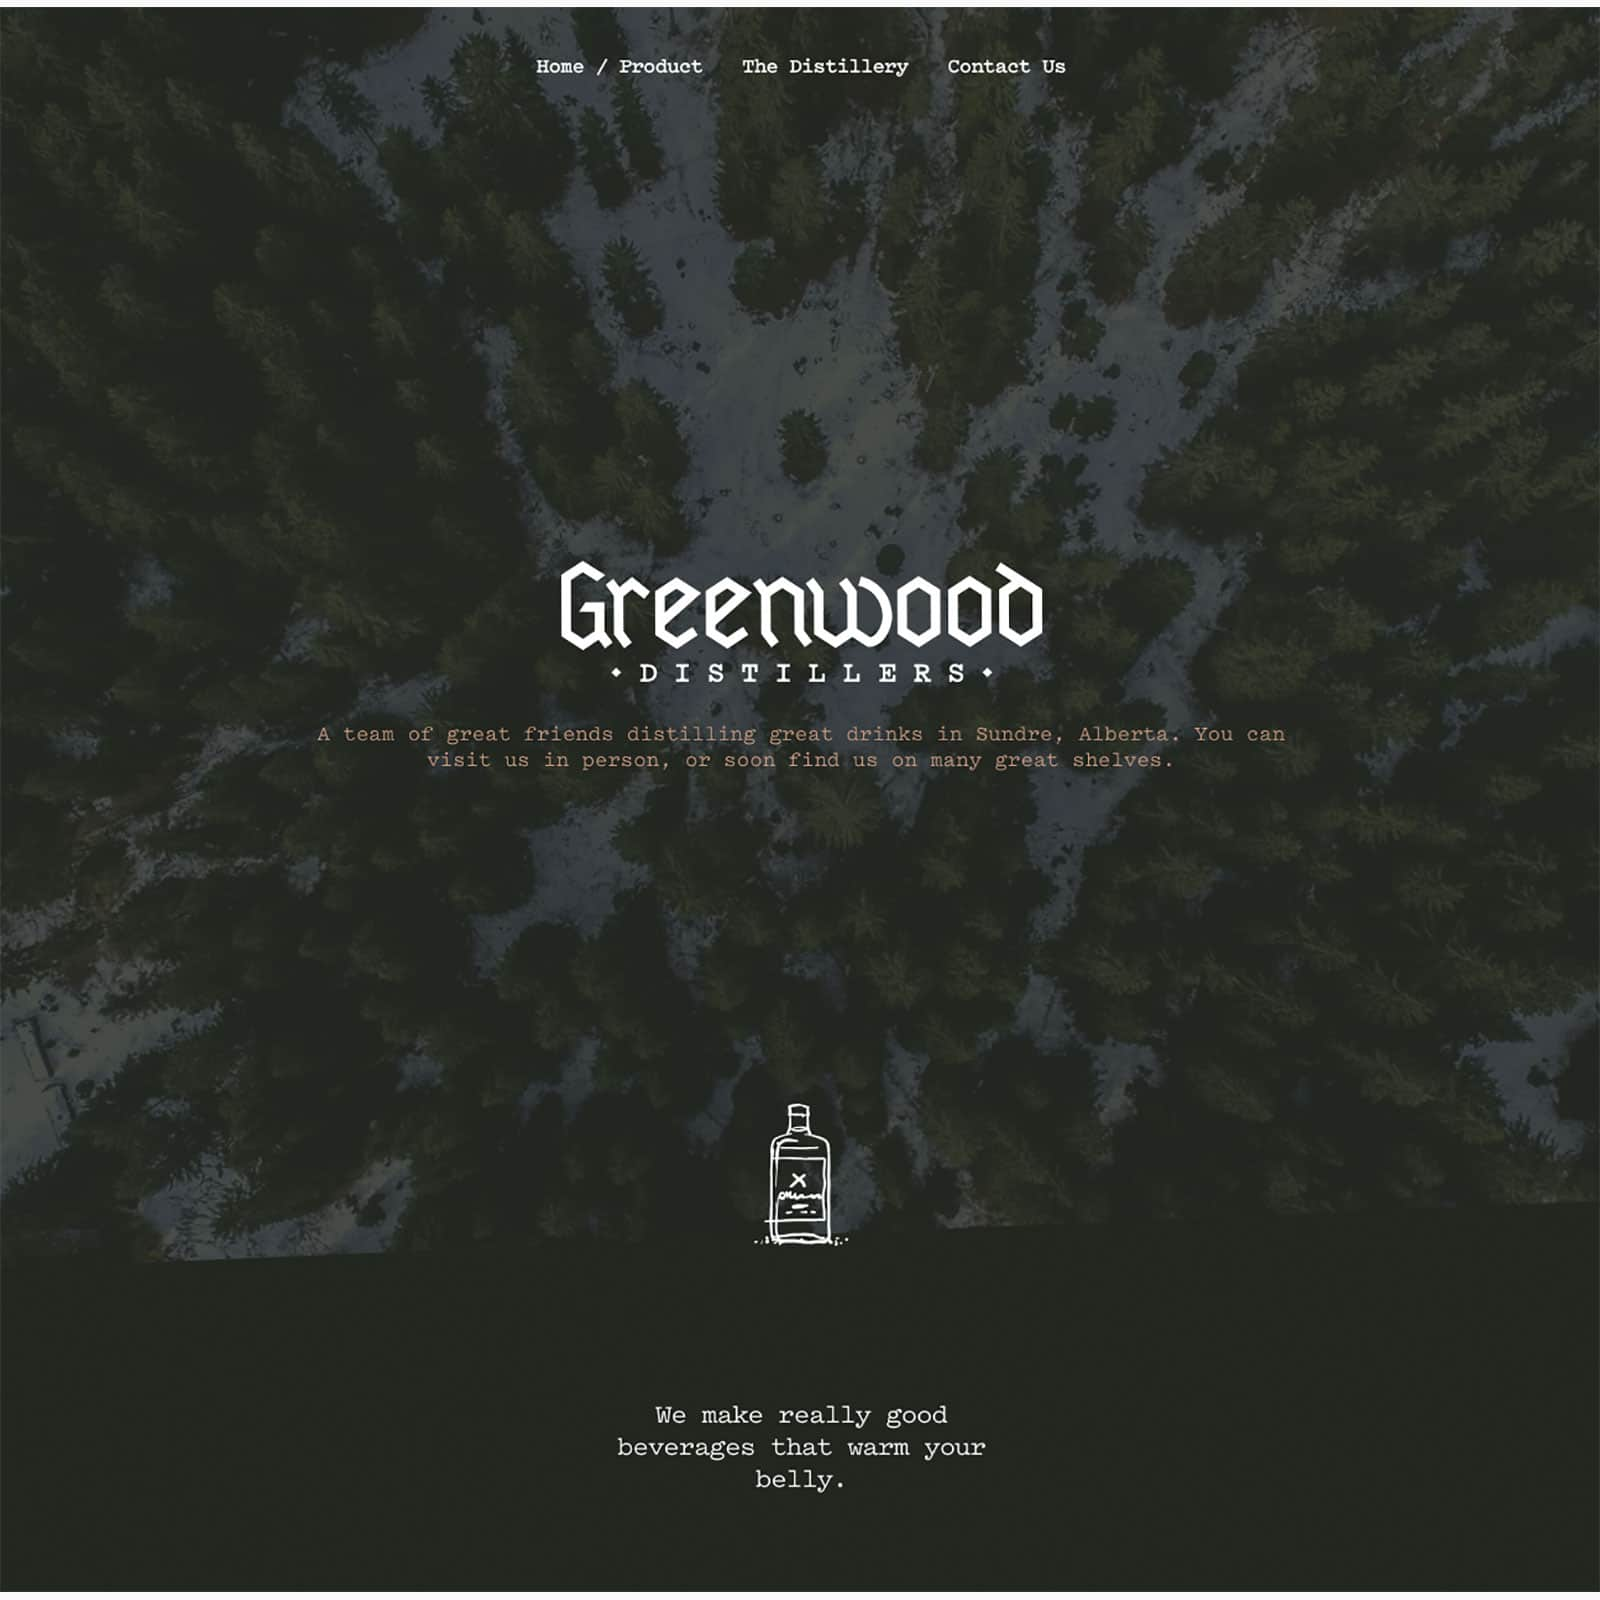 Greenwood Distillers